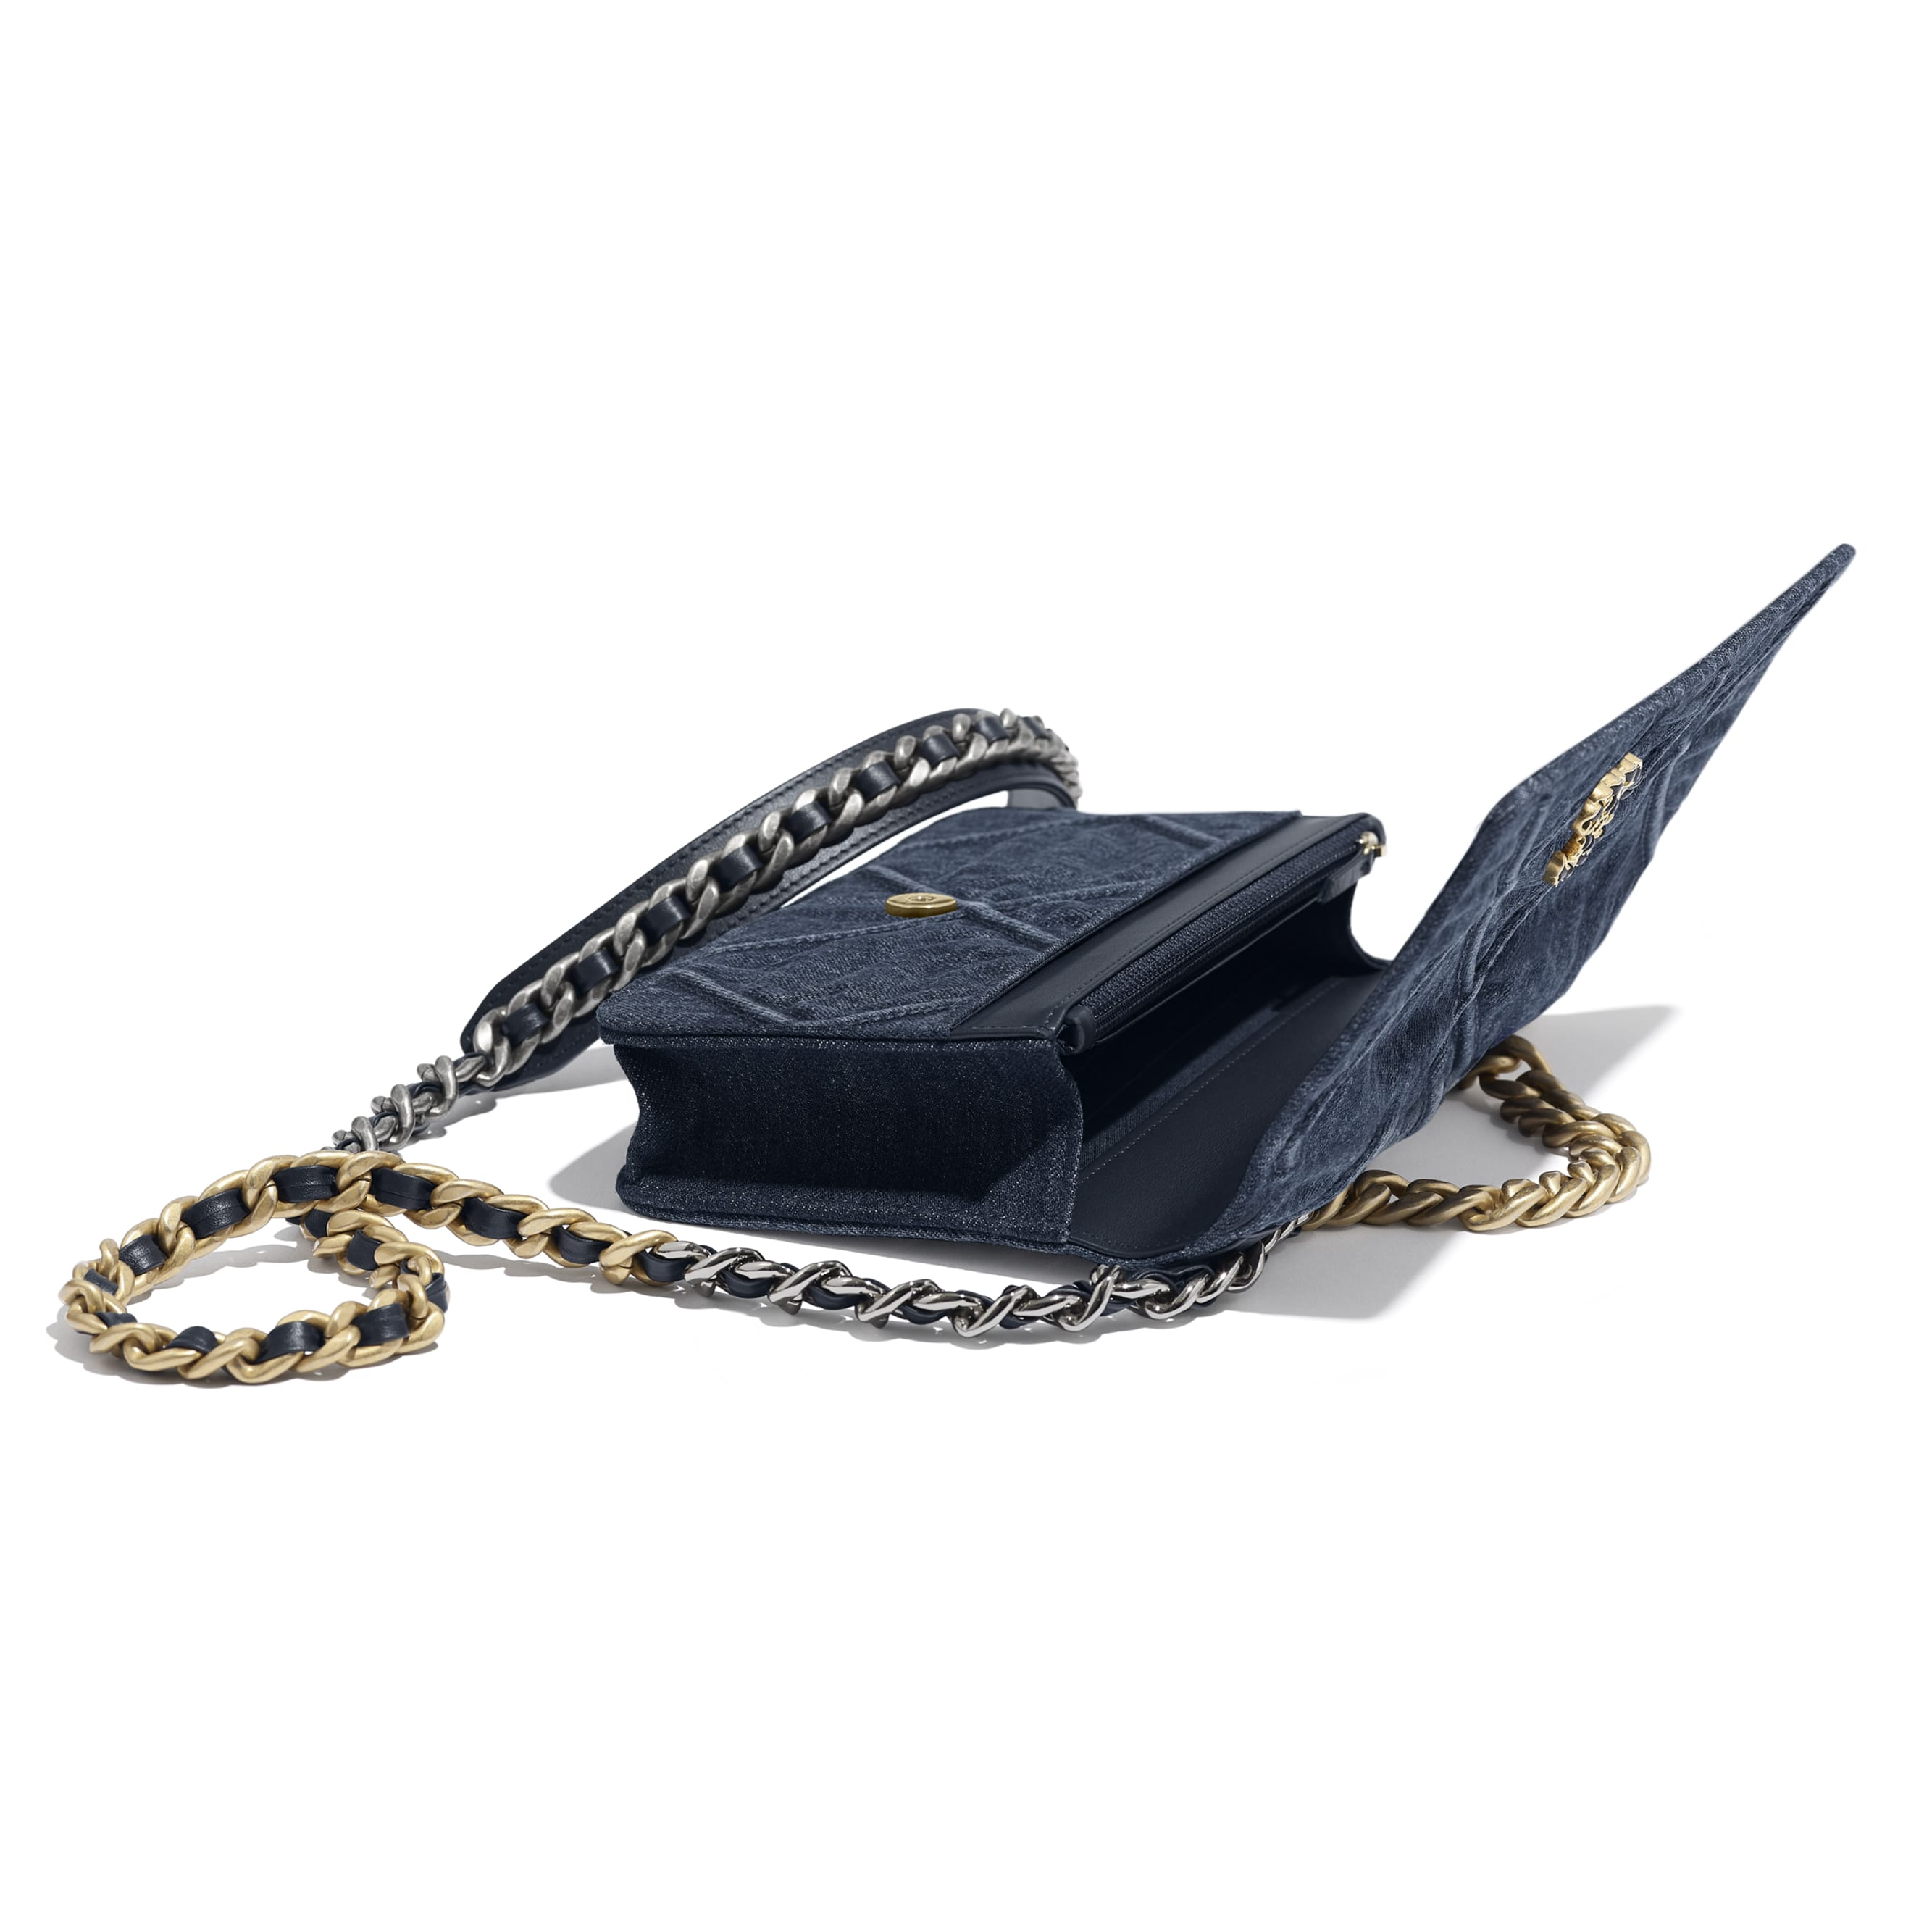 CHANEL 19 Wallet on Chain - Blue - Denim, Gold-Tone, Silver-Tone & Ruthenium-Finish Metal - CHANEL - Extra view - see standard sized version